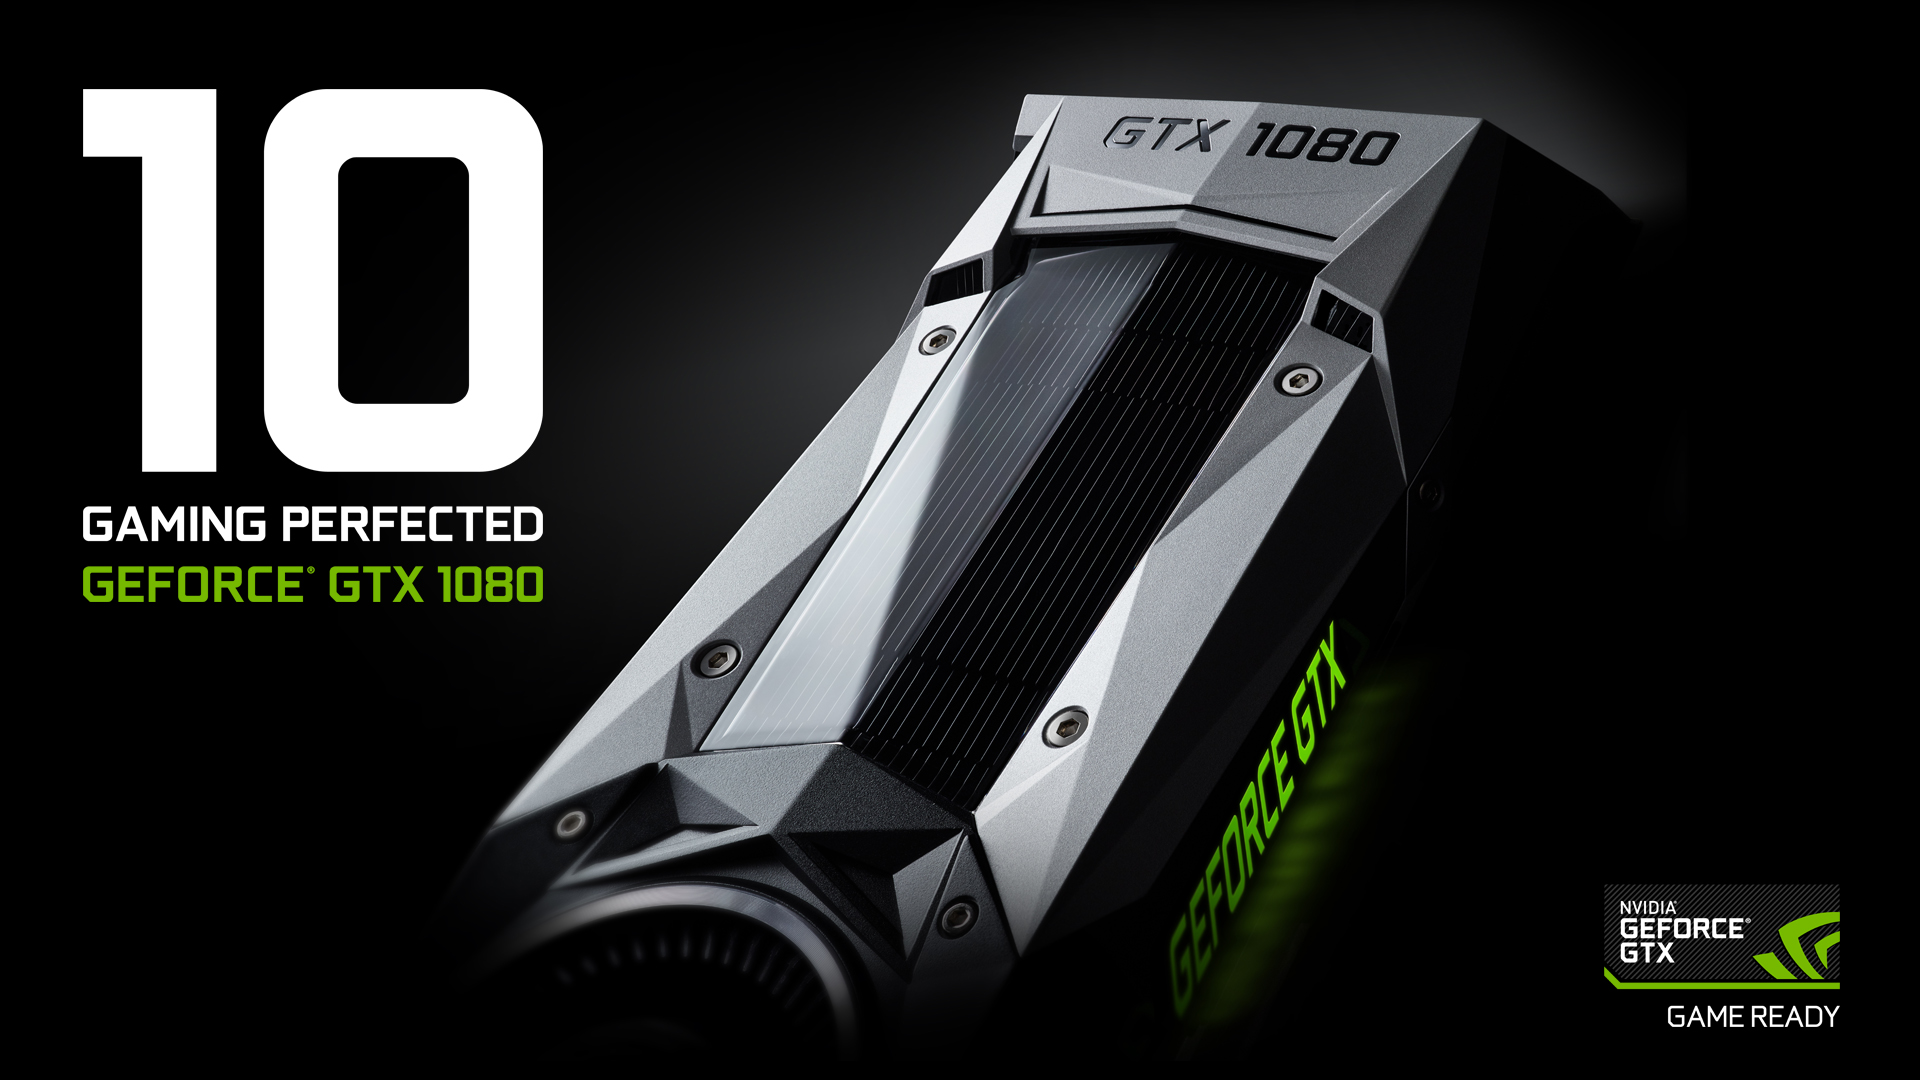 13 Best GTX 1080 cards as of 2019 - Slant